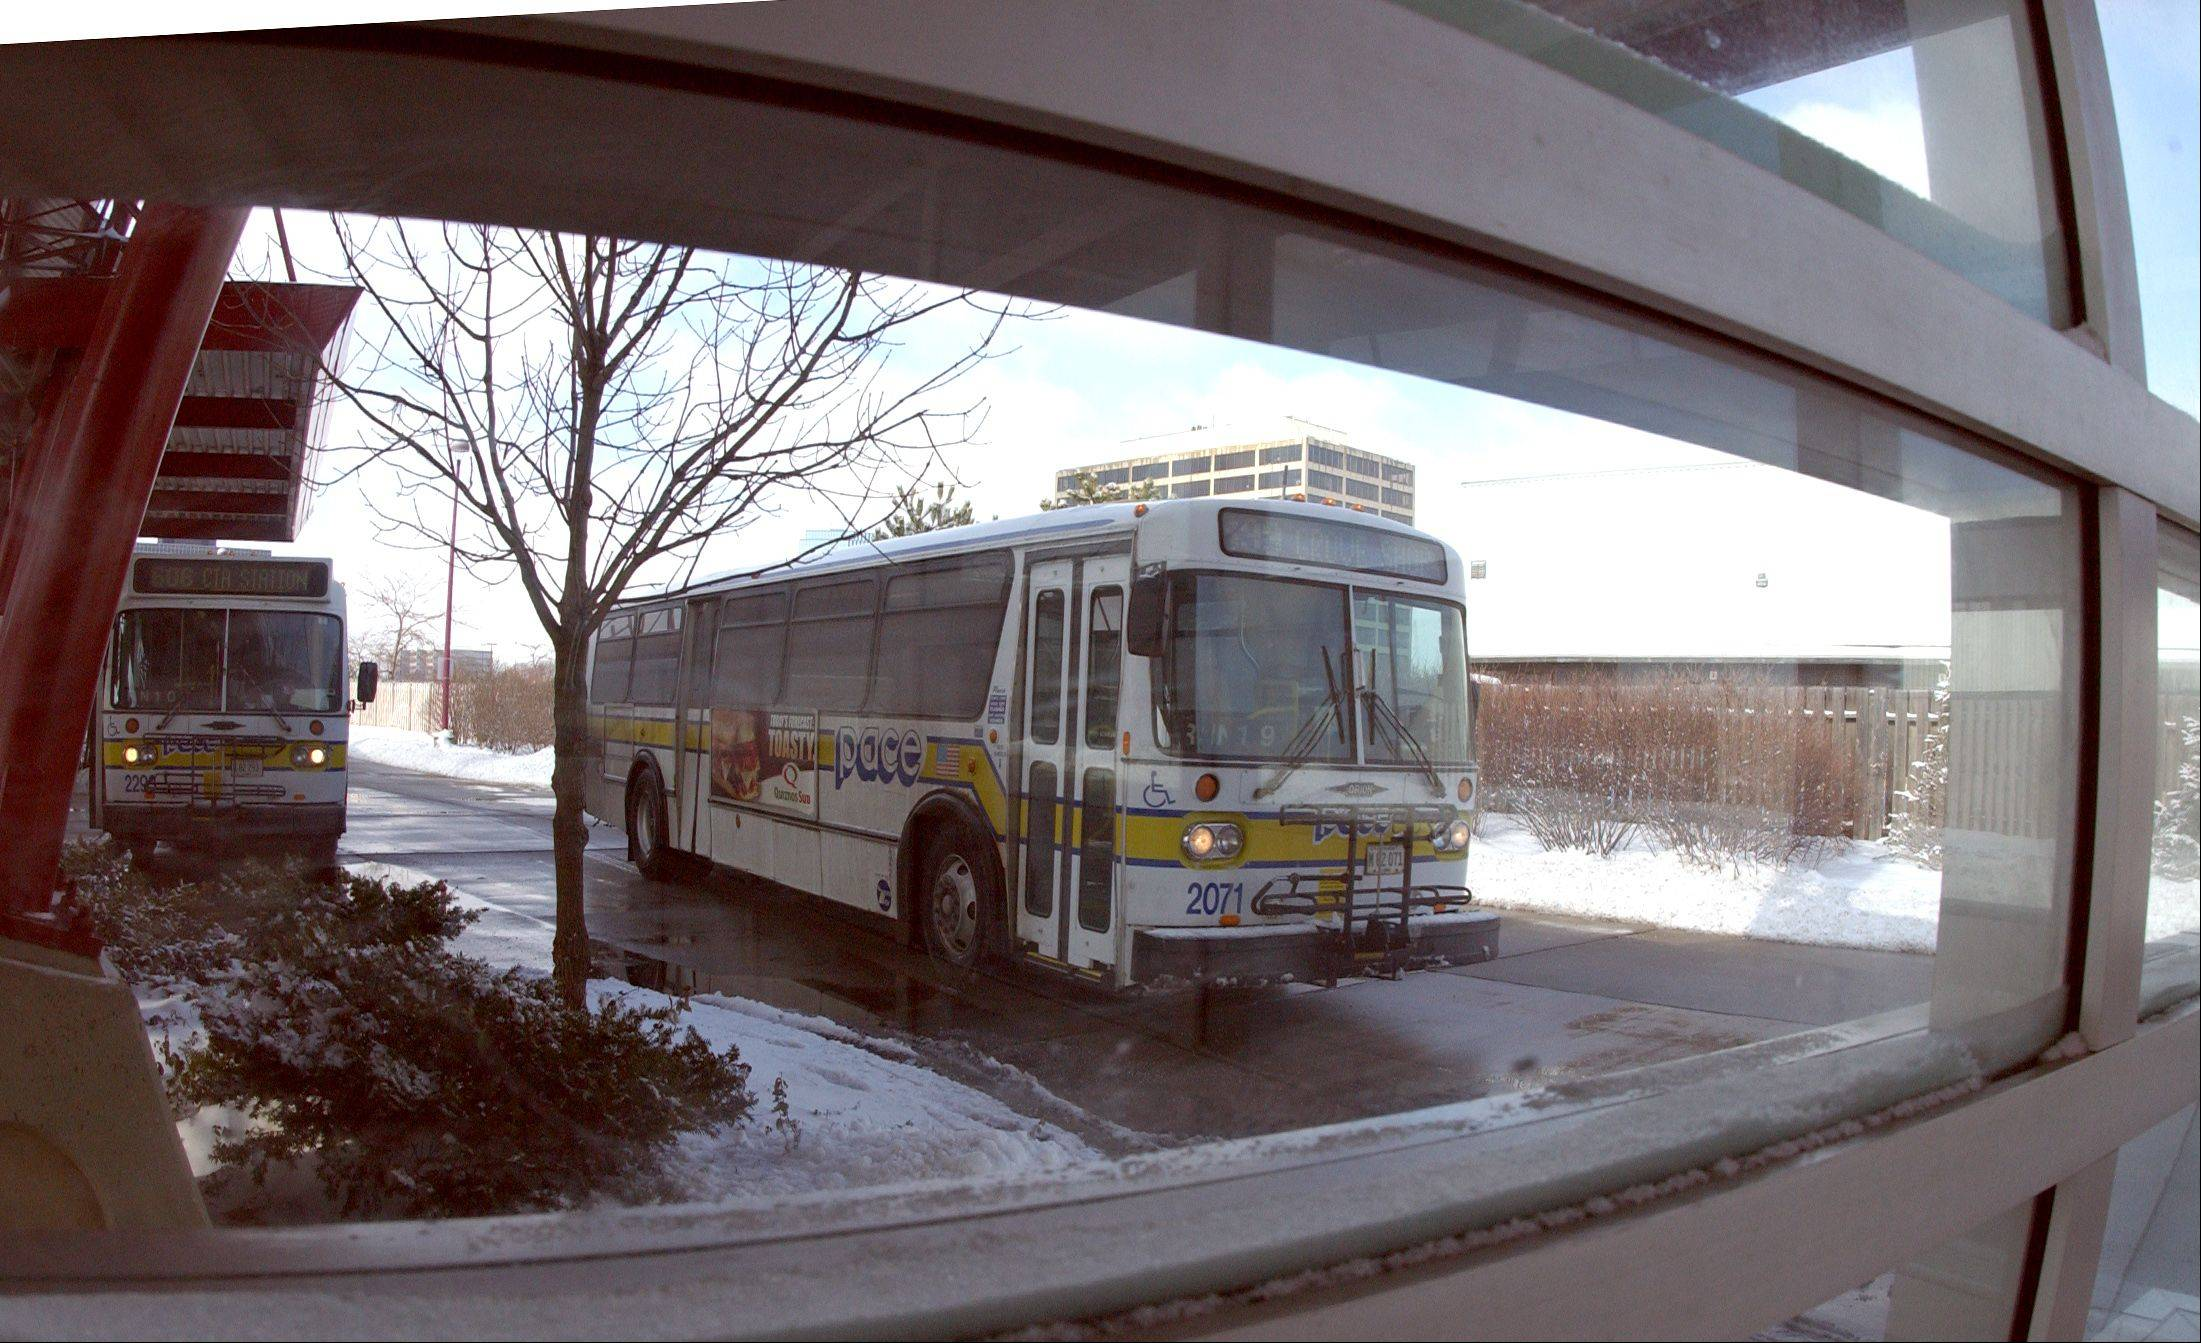 Planned express bus service along I-90 will use Pace's Northwest Transportation Center in Schaumburg as a connector point.